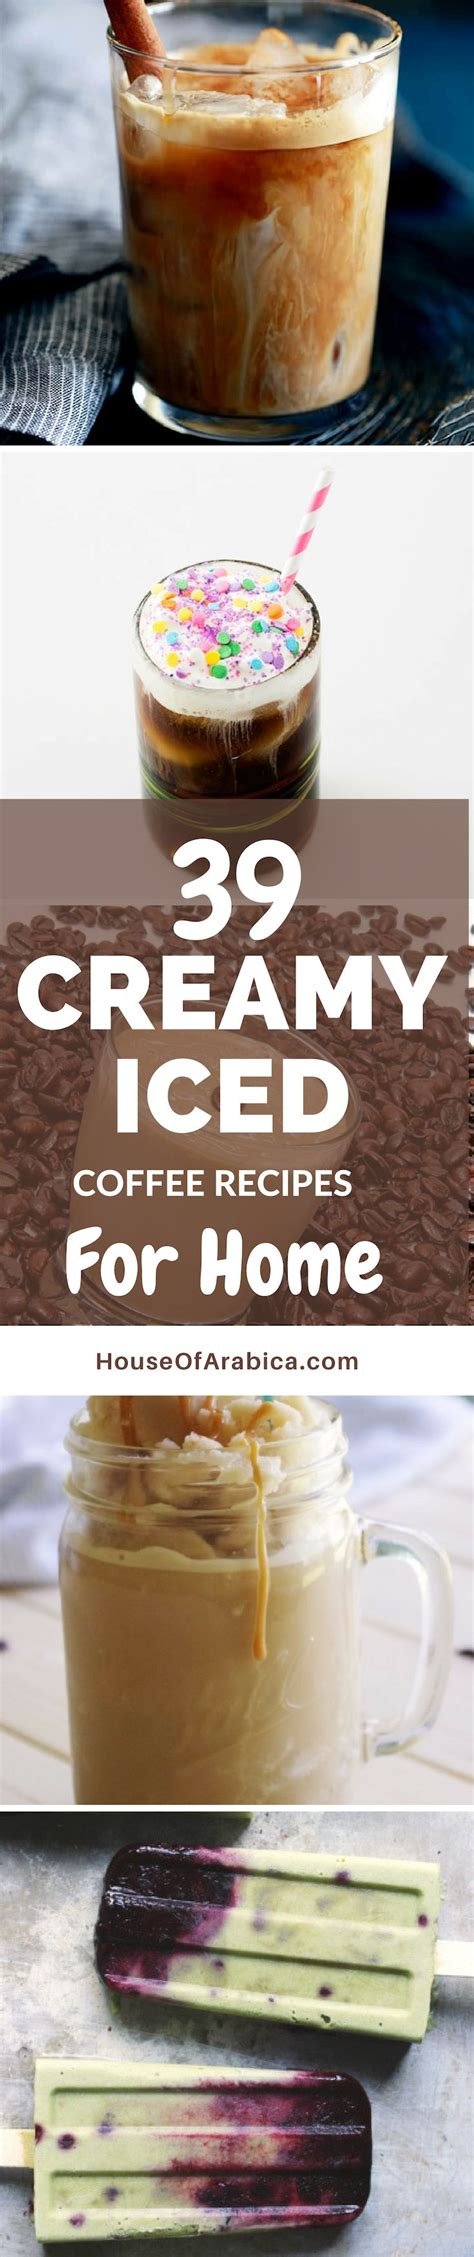 The worst thing about iced coffee is that it goes down so smooth and easy that our monthly starbucks expenditure rivals that of the electric bill with the ac these recipes are just as good as anything we'd get at a coffee shop, but they cost a fraction of the price to make. 39 Easy Creamy Iced Coffee Recipes For Exciting Summer - House Of Arabica | Coffee recipes ...